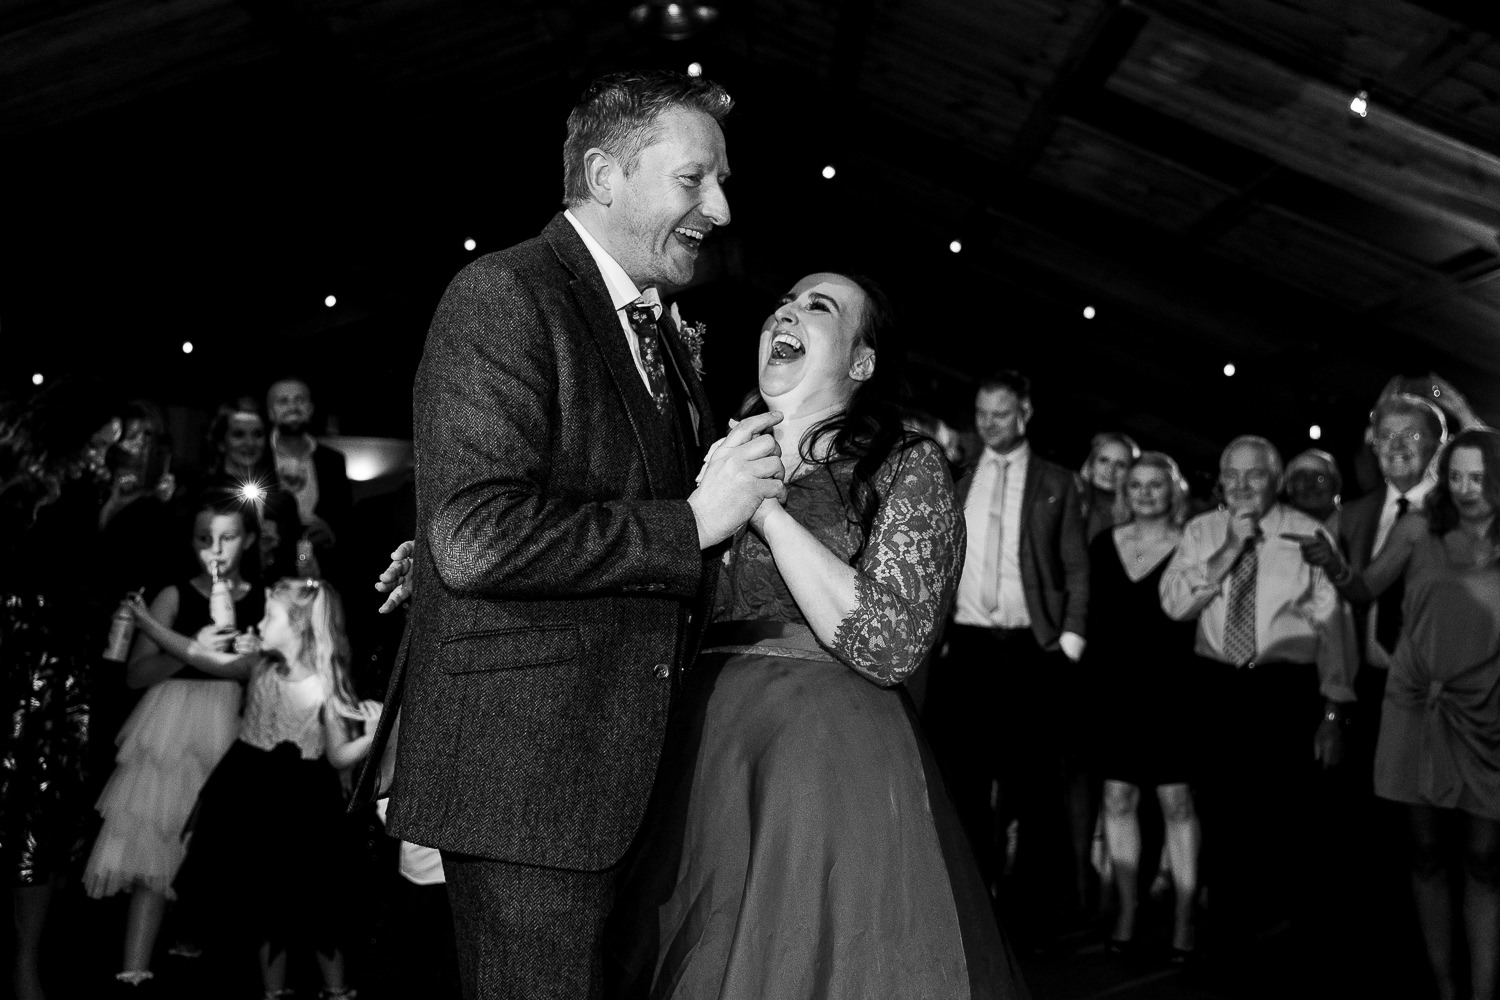 First dance laughing